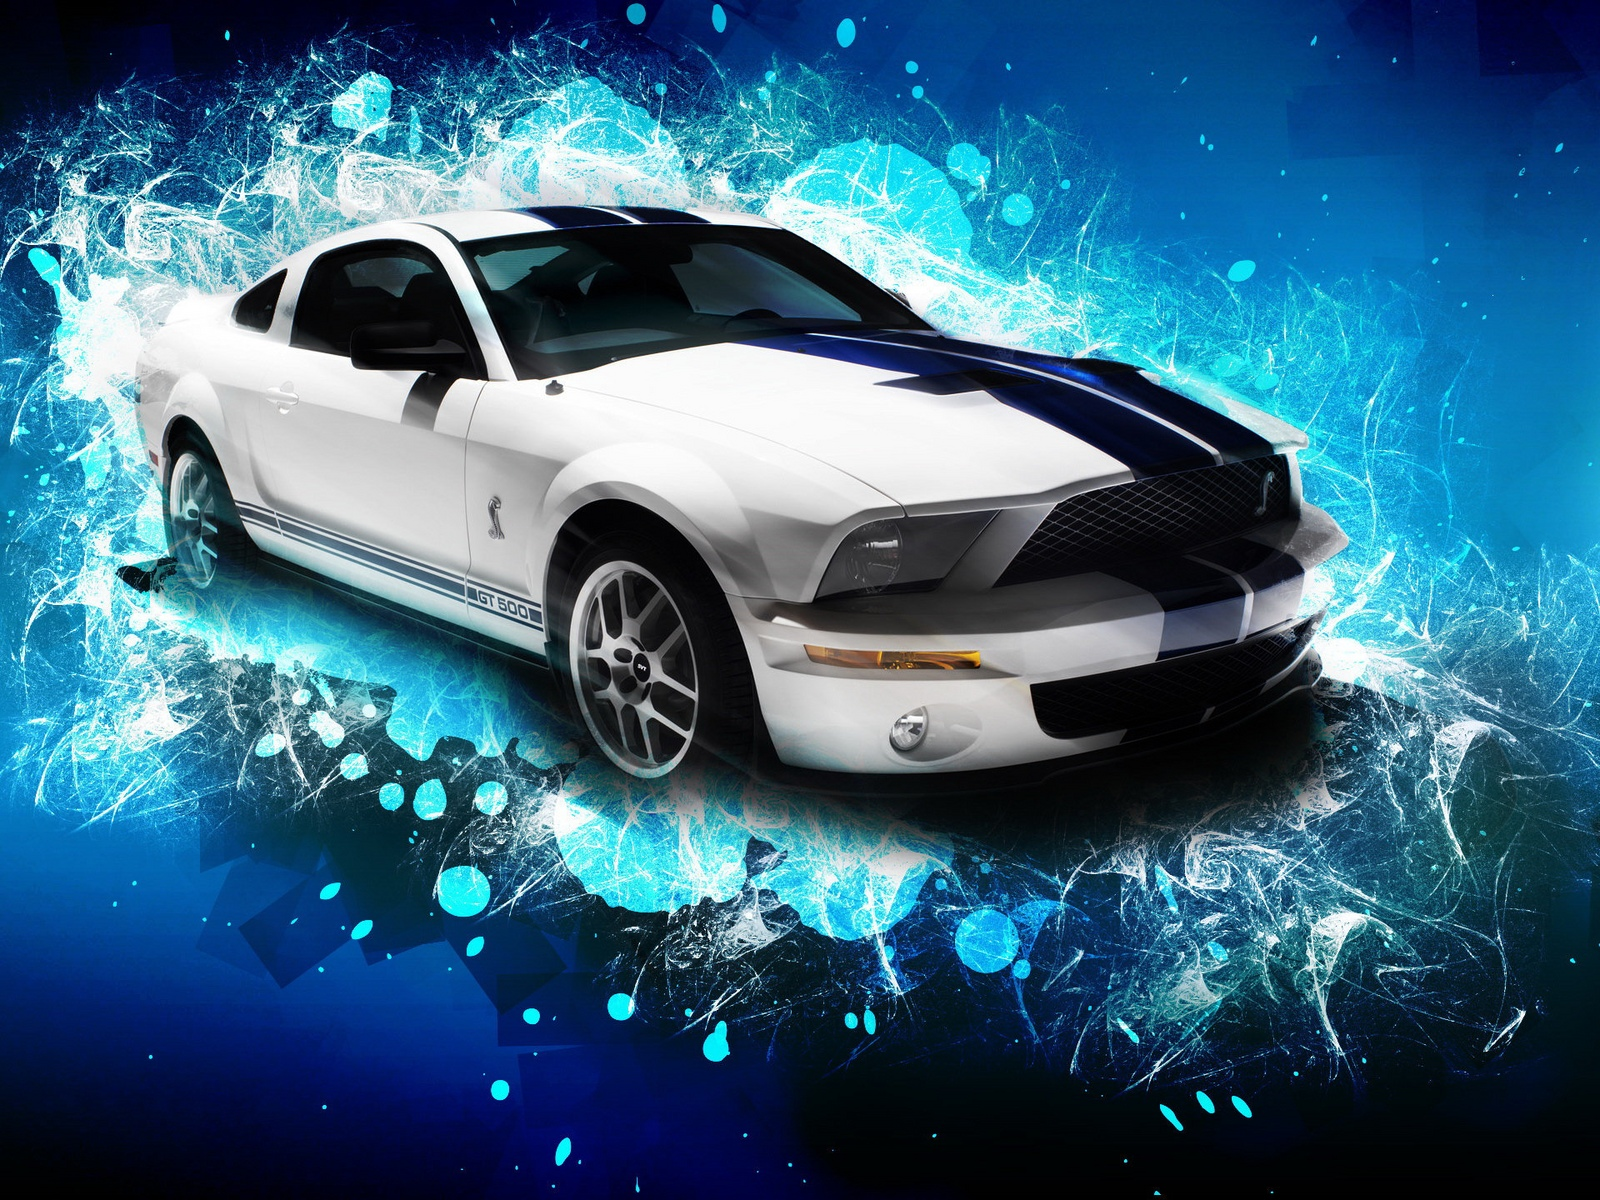 Fun Plannet hd car wallpapers 1600x1200